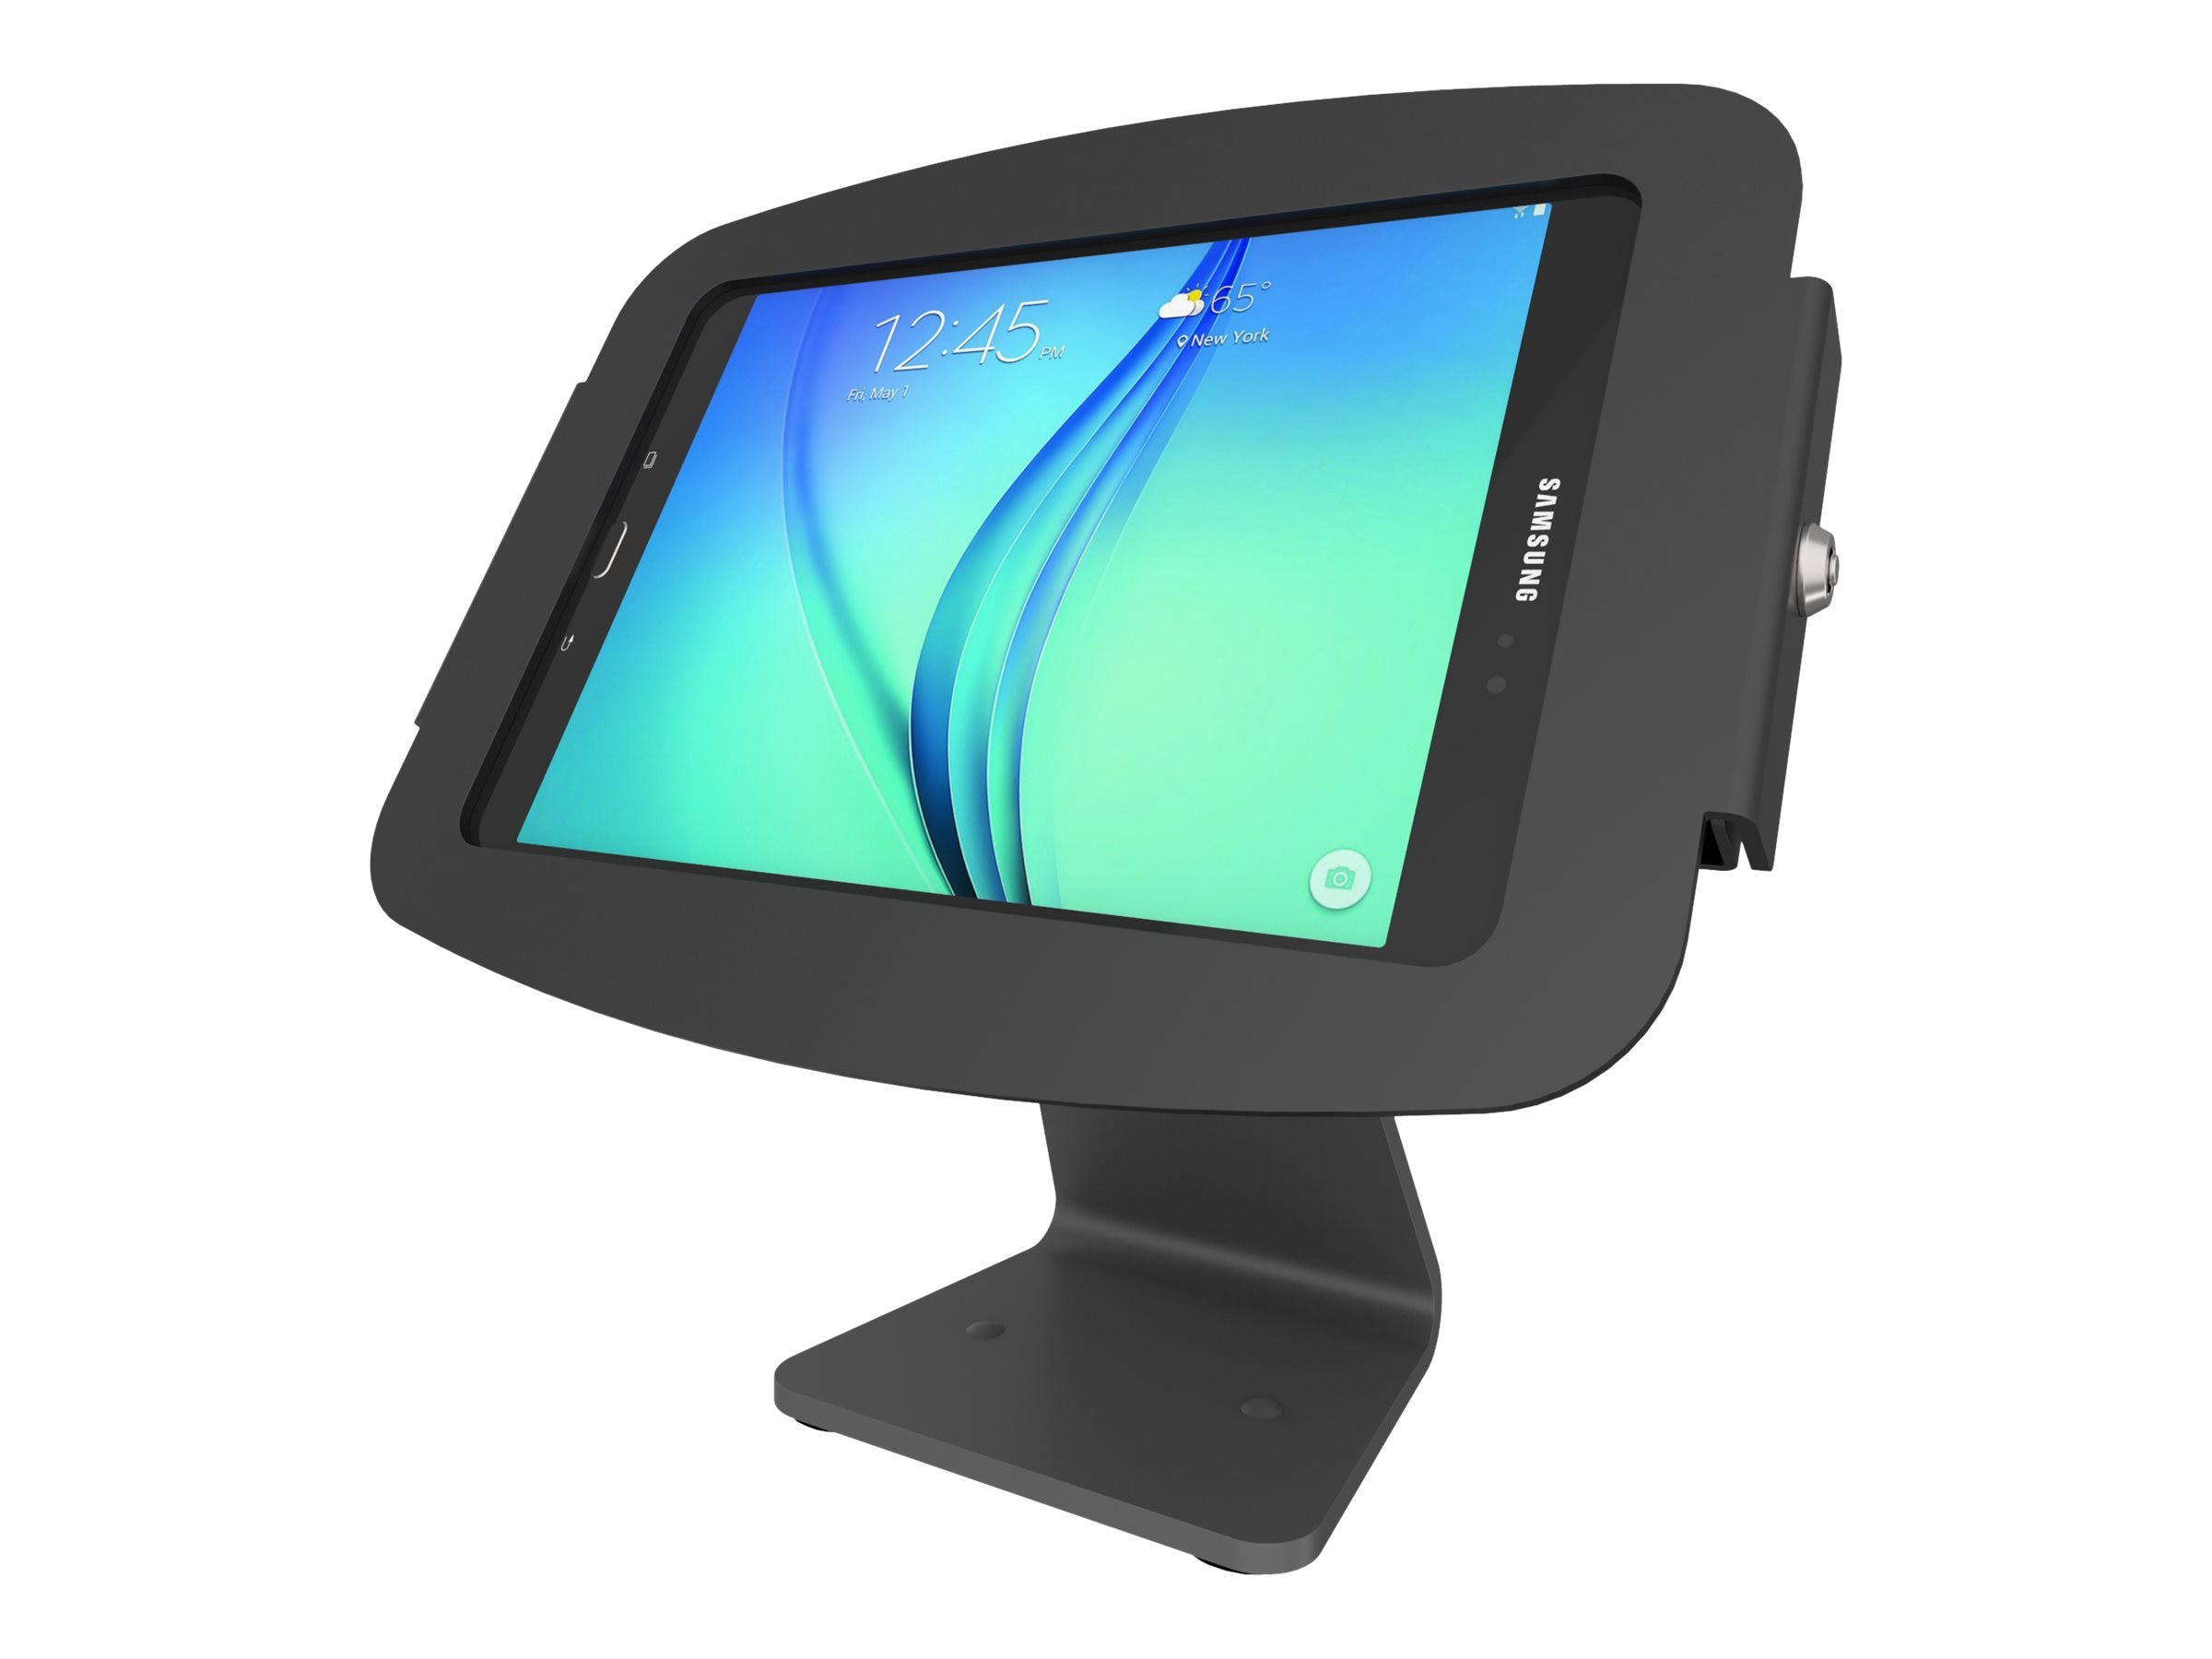 Compulocks Space Enclosure 360 Kiosk for Galaxy Tab A 9.7